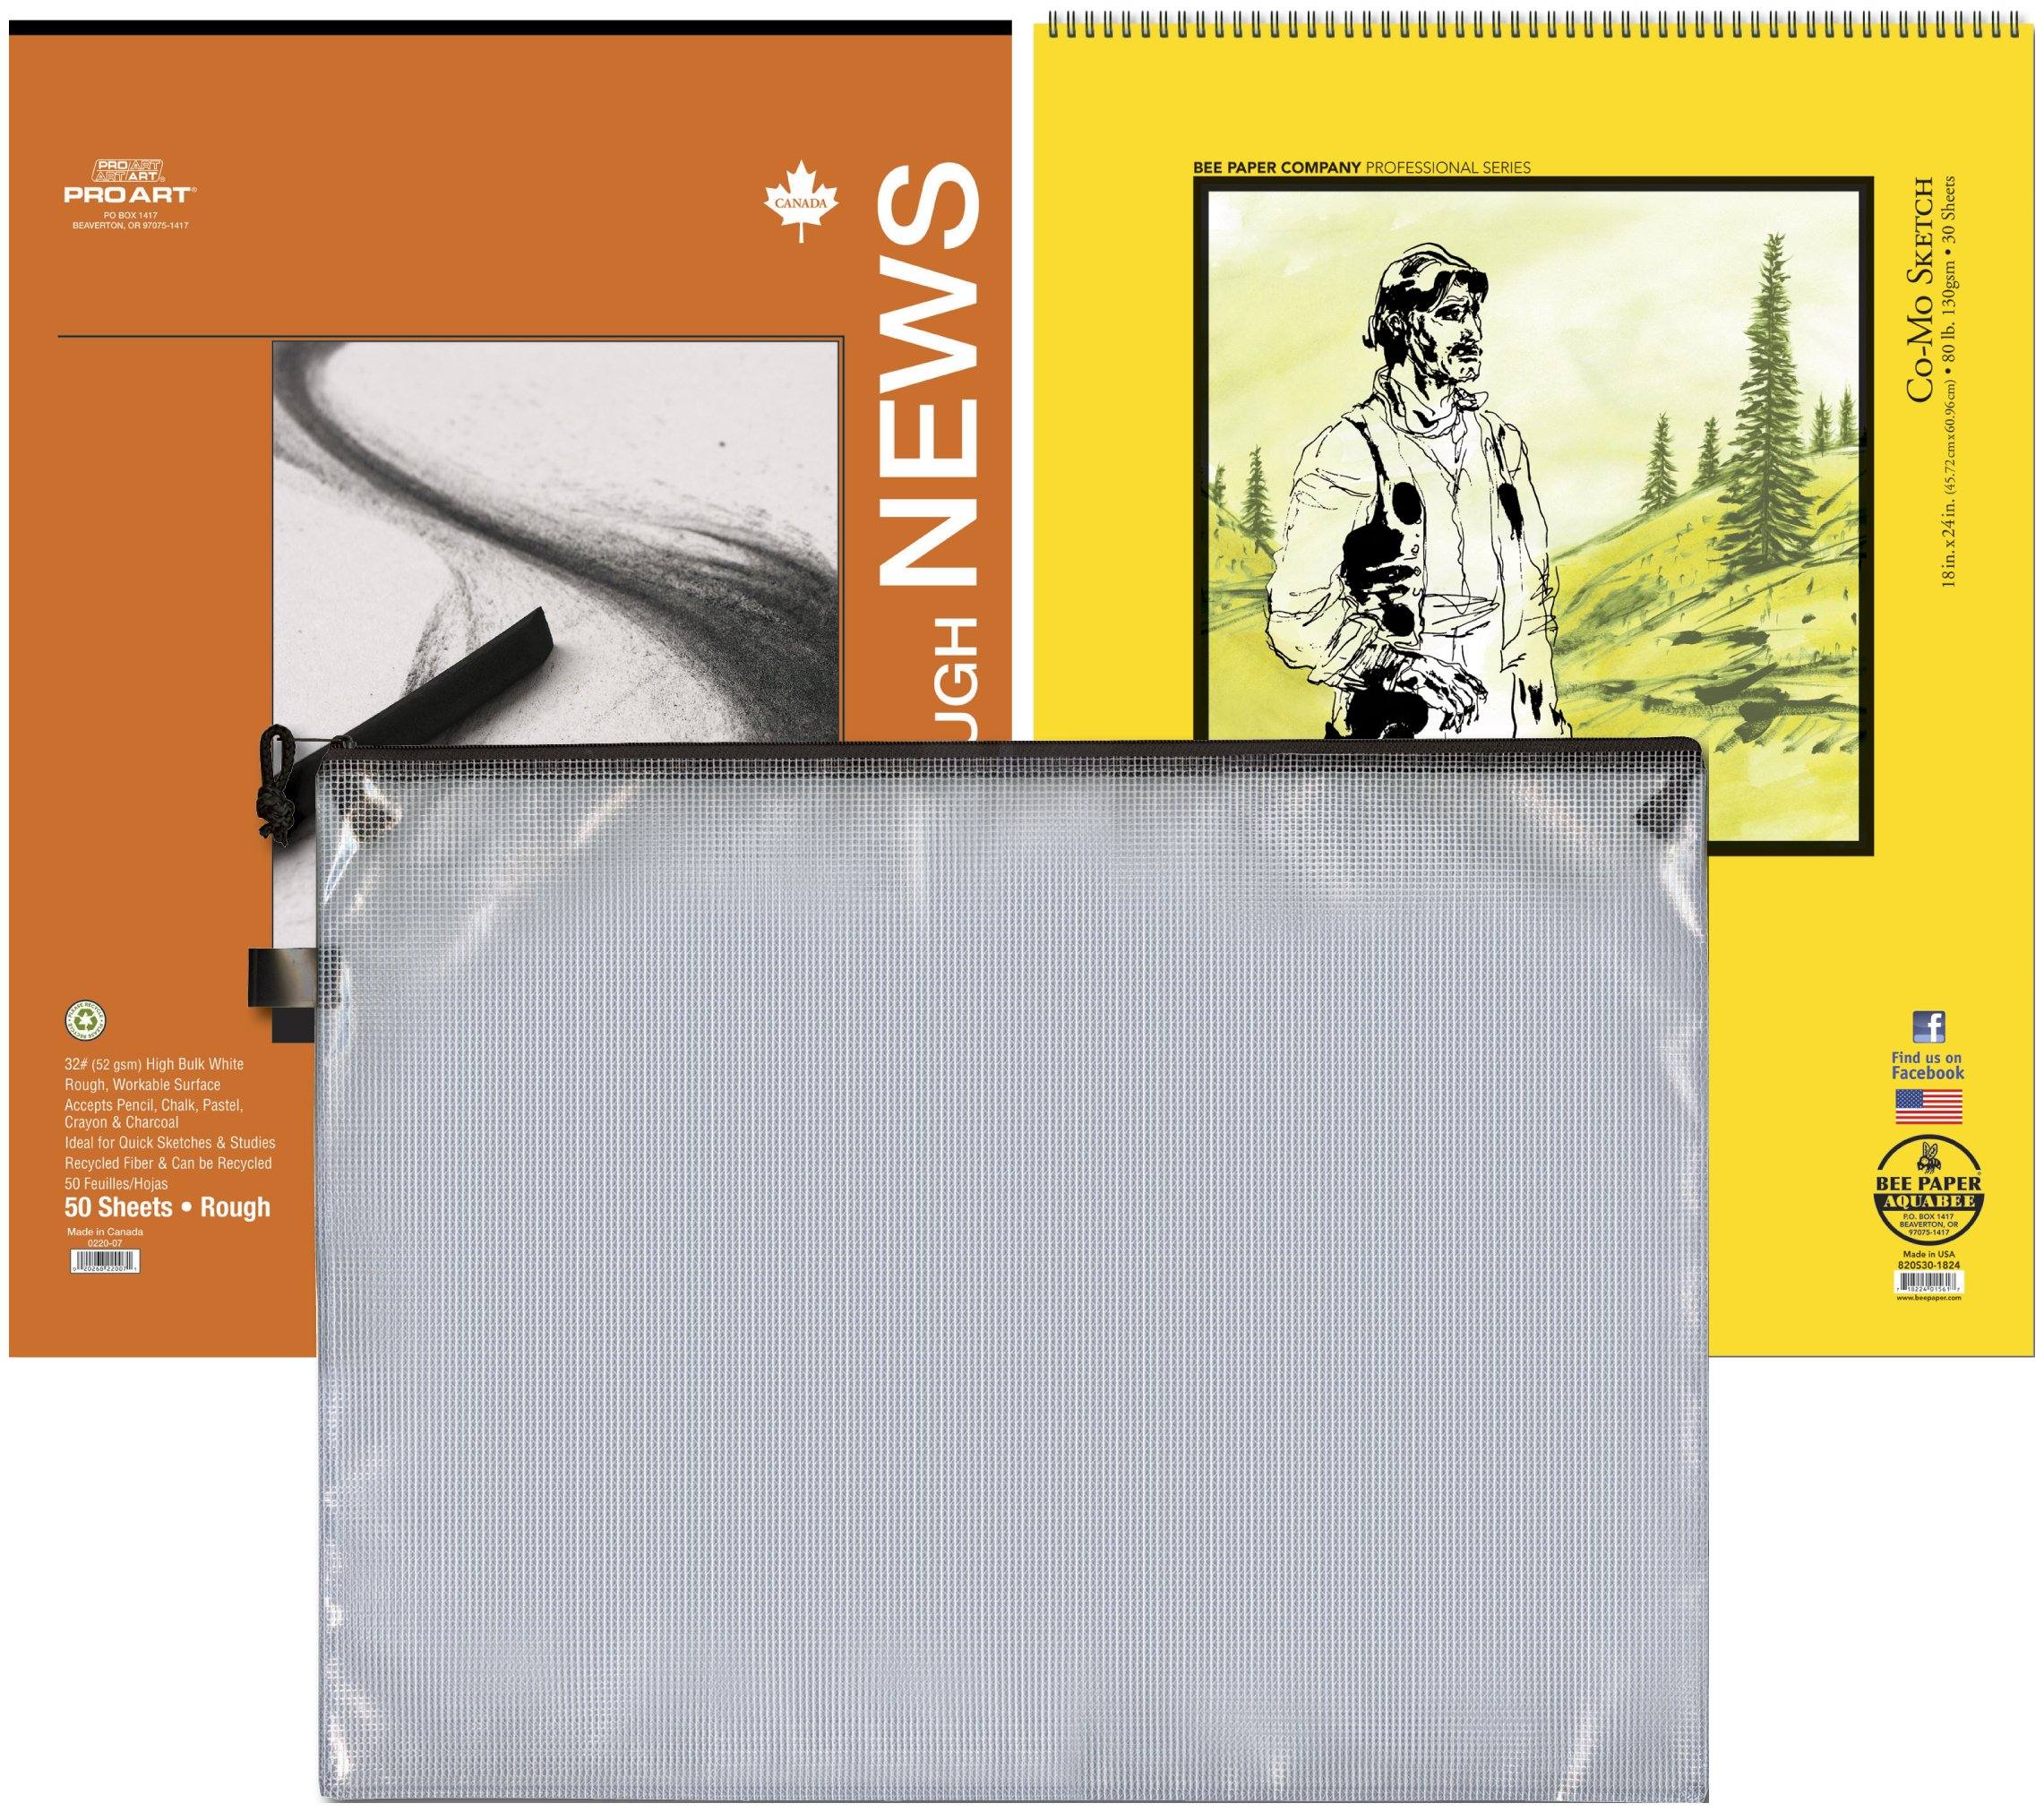 Pro Art Mesh Bag 18-Inch by 24-Inch Como and Newsprint Pad Value Pack